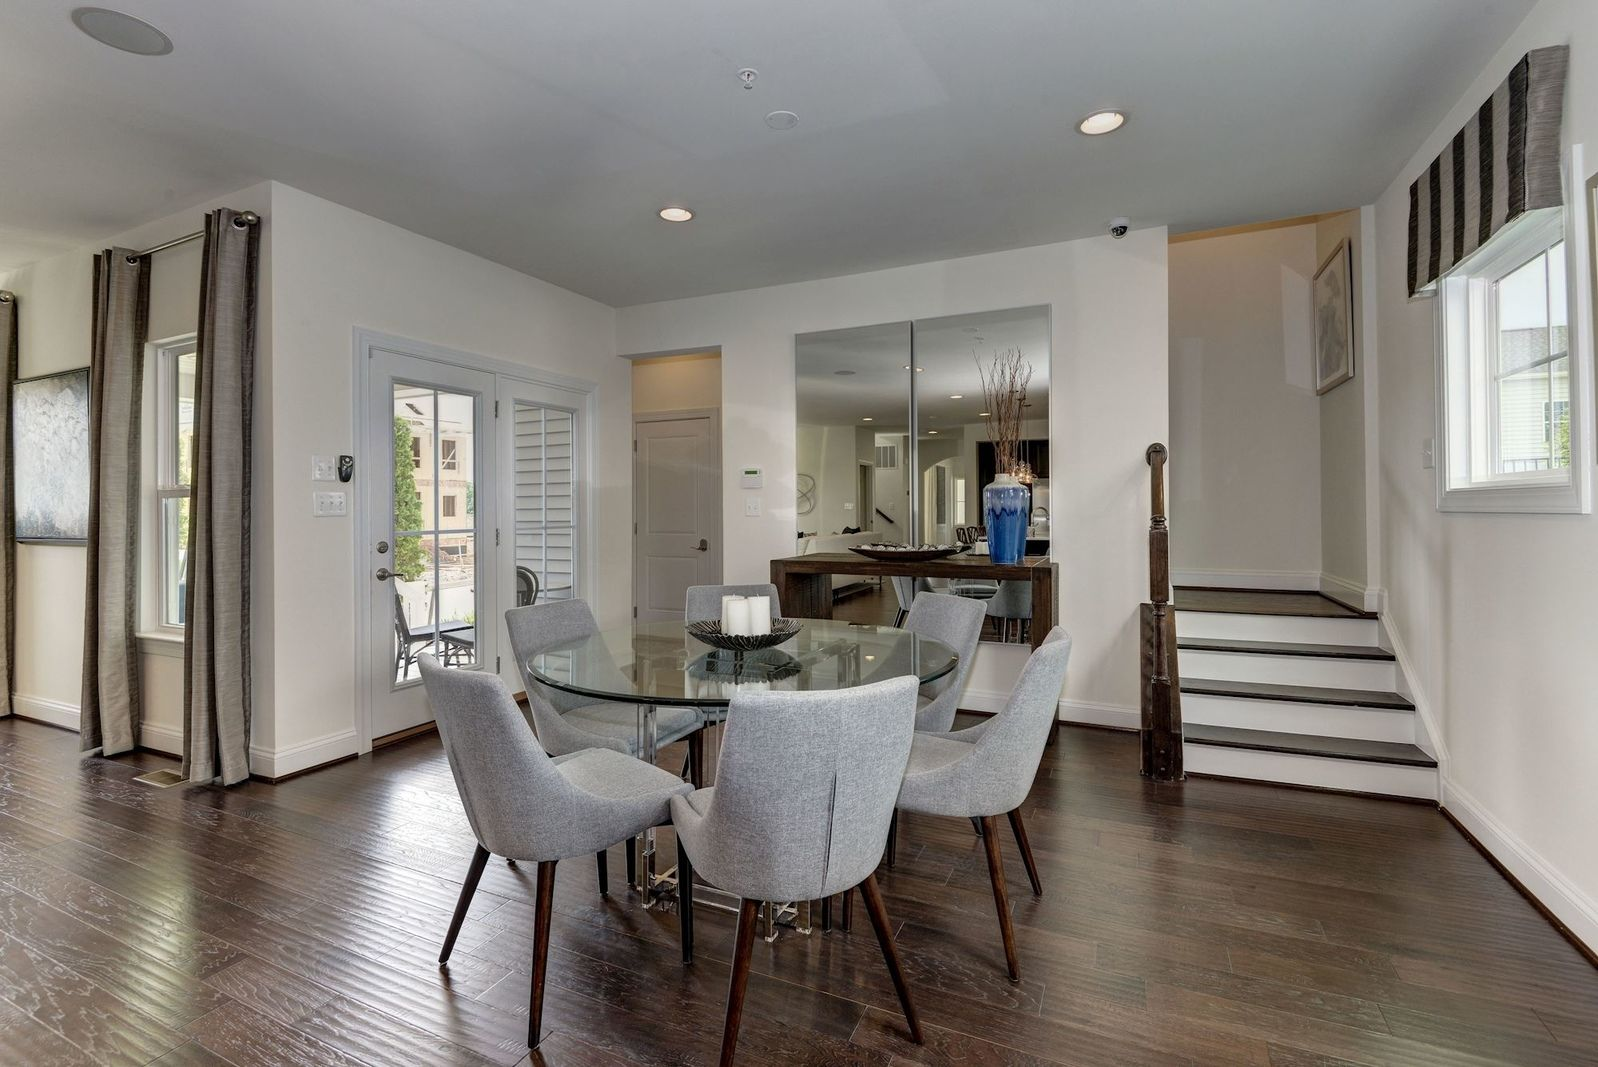 Kitchen featured in the Mitchell By Ryan Homes in Baltimore, MD